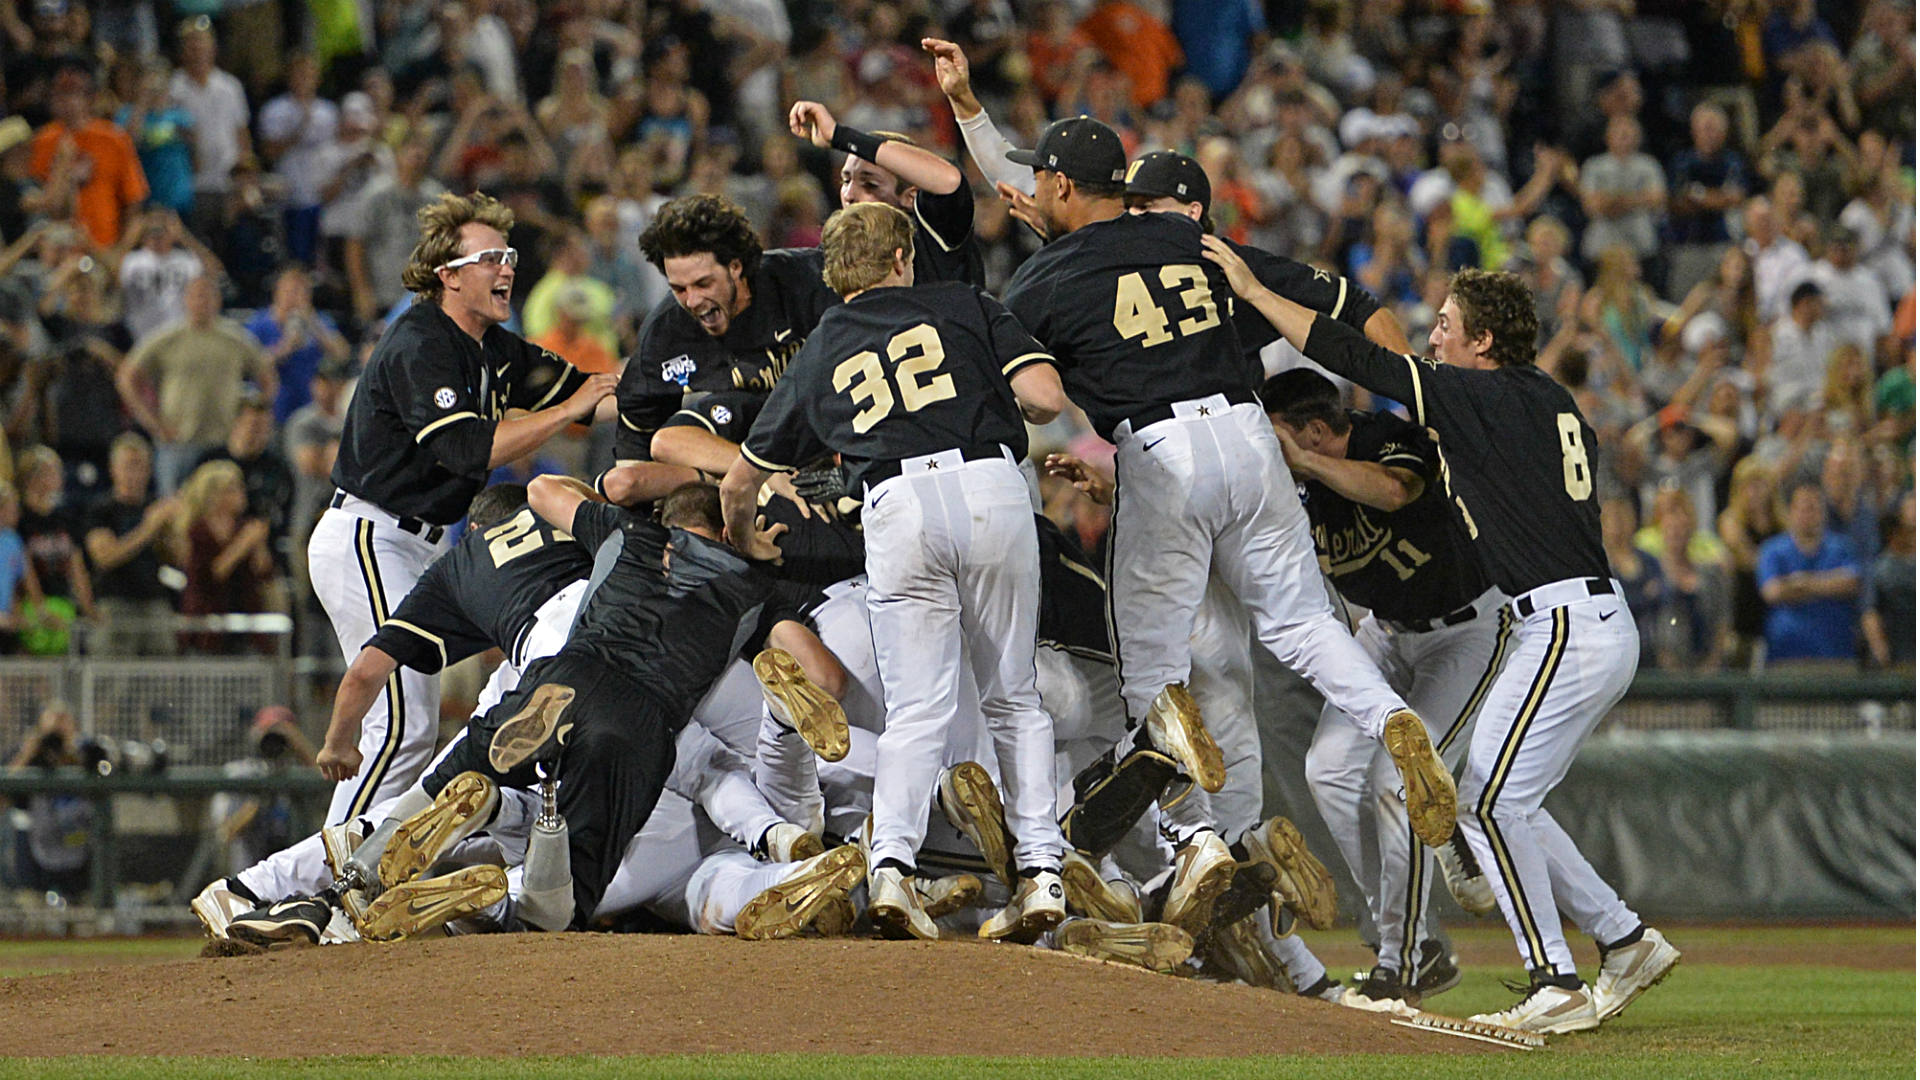 NCAA Baseball Tournament 2015: Dates, times, TV for regional round